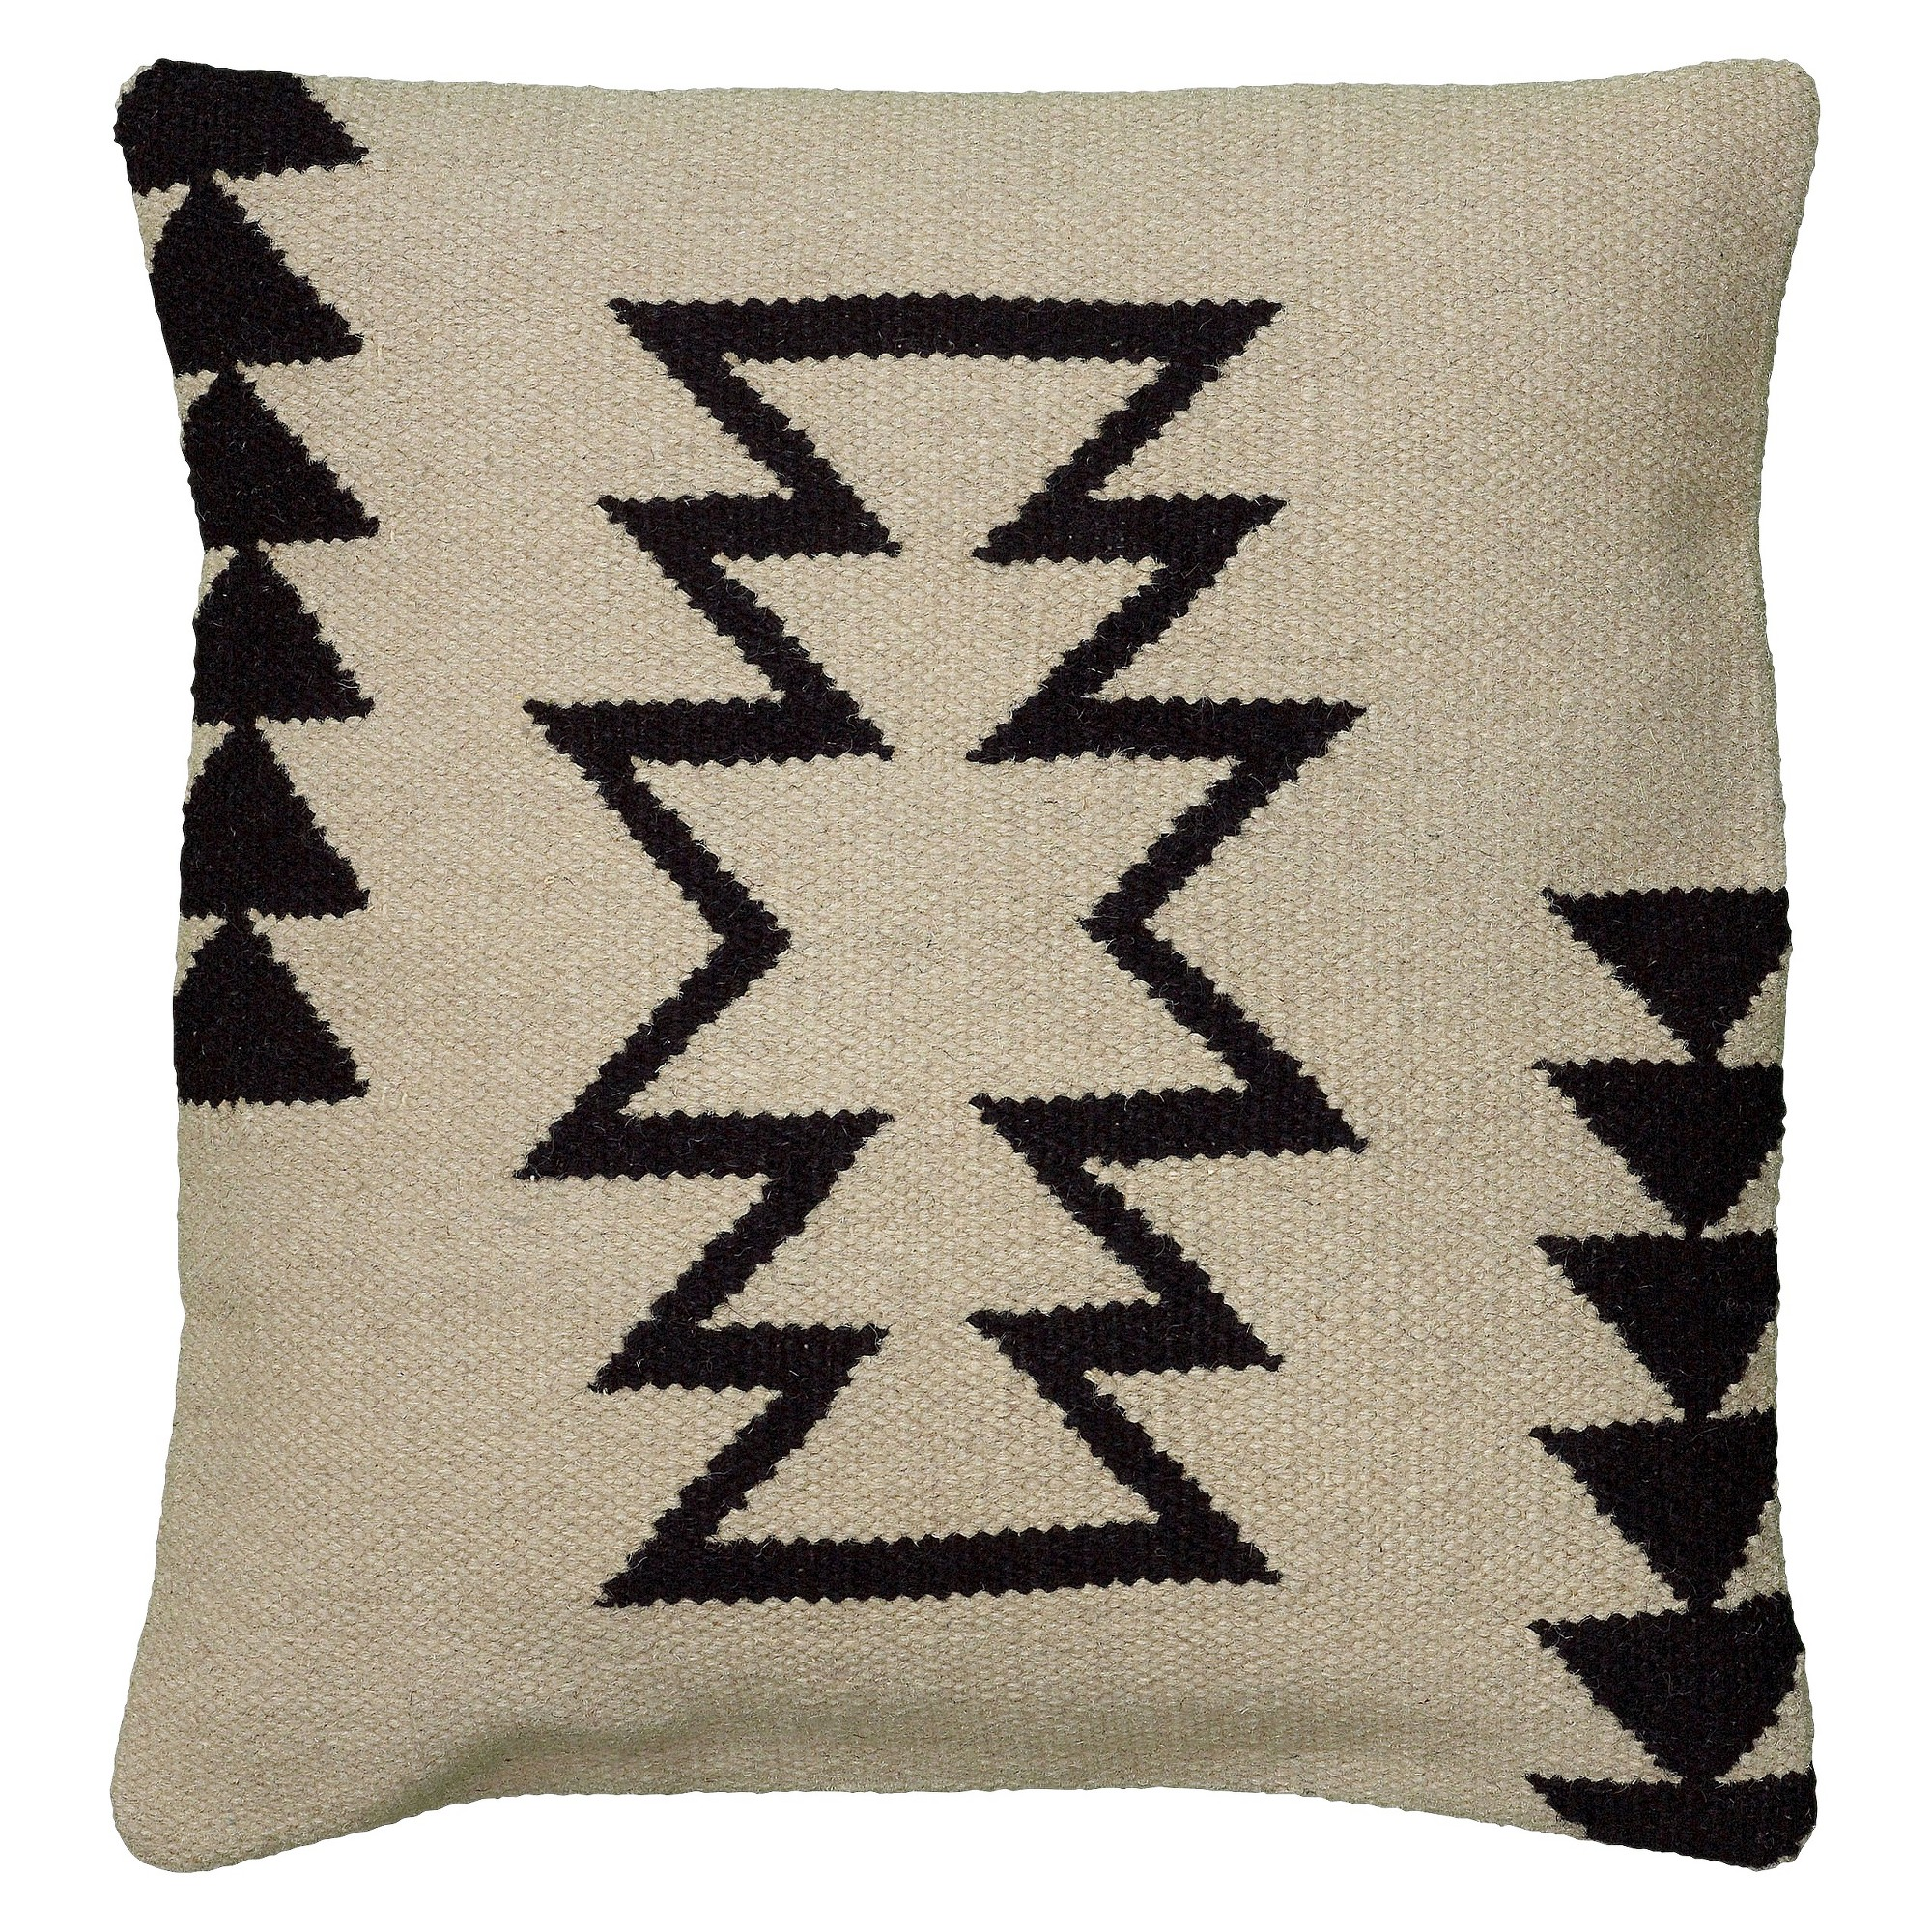 Ivory black southwestern stripe throw pillow 18x18 rizzy home